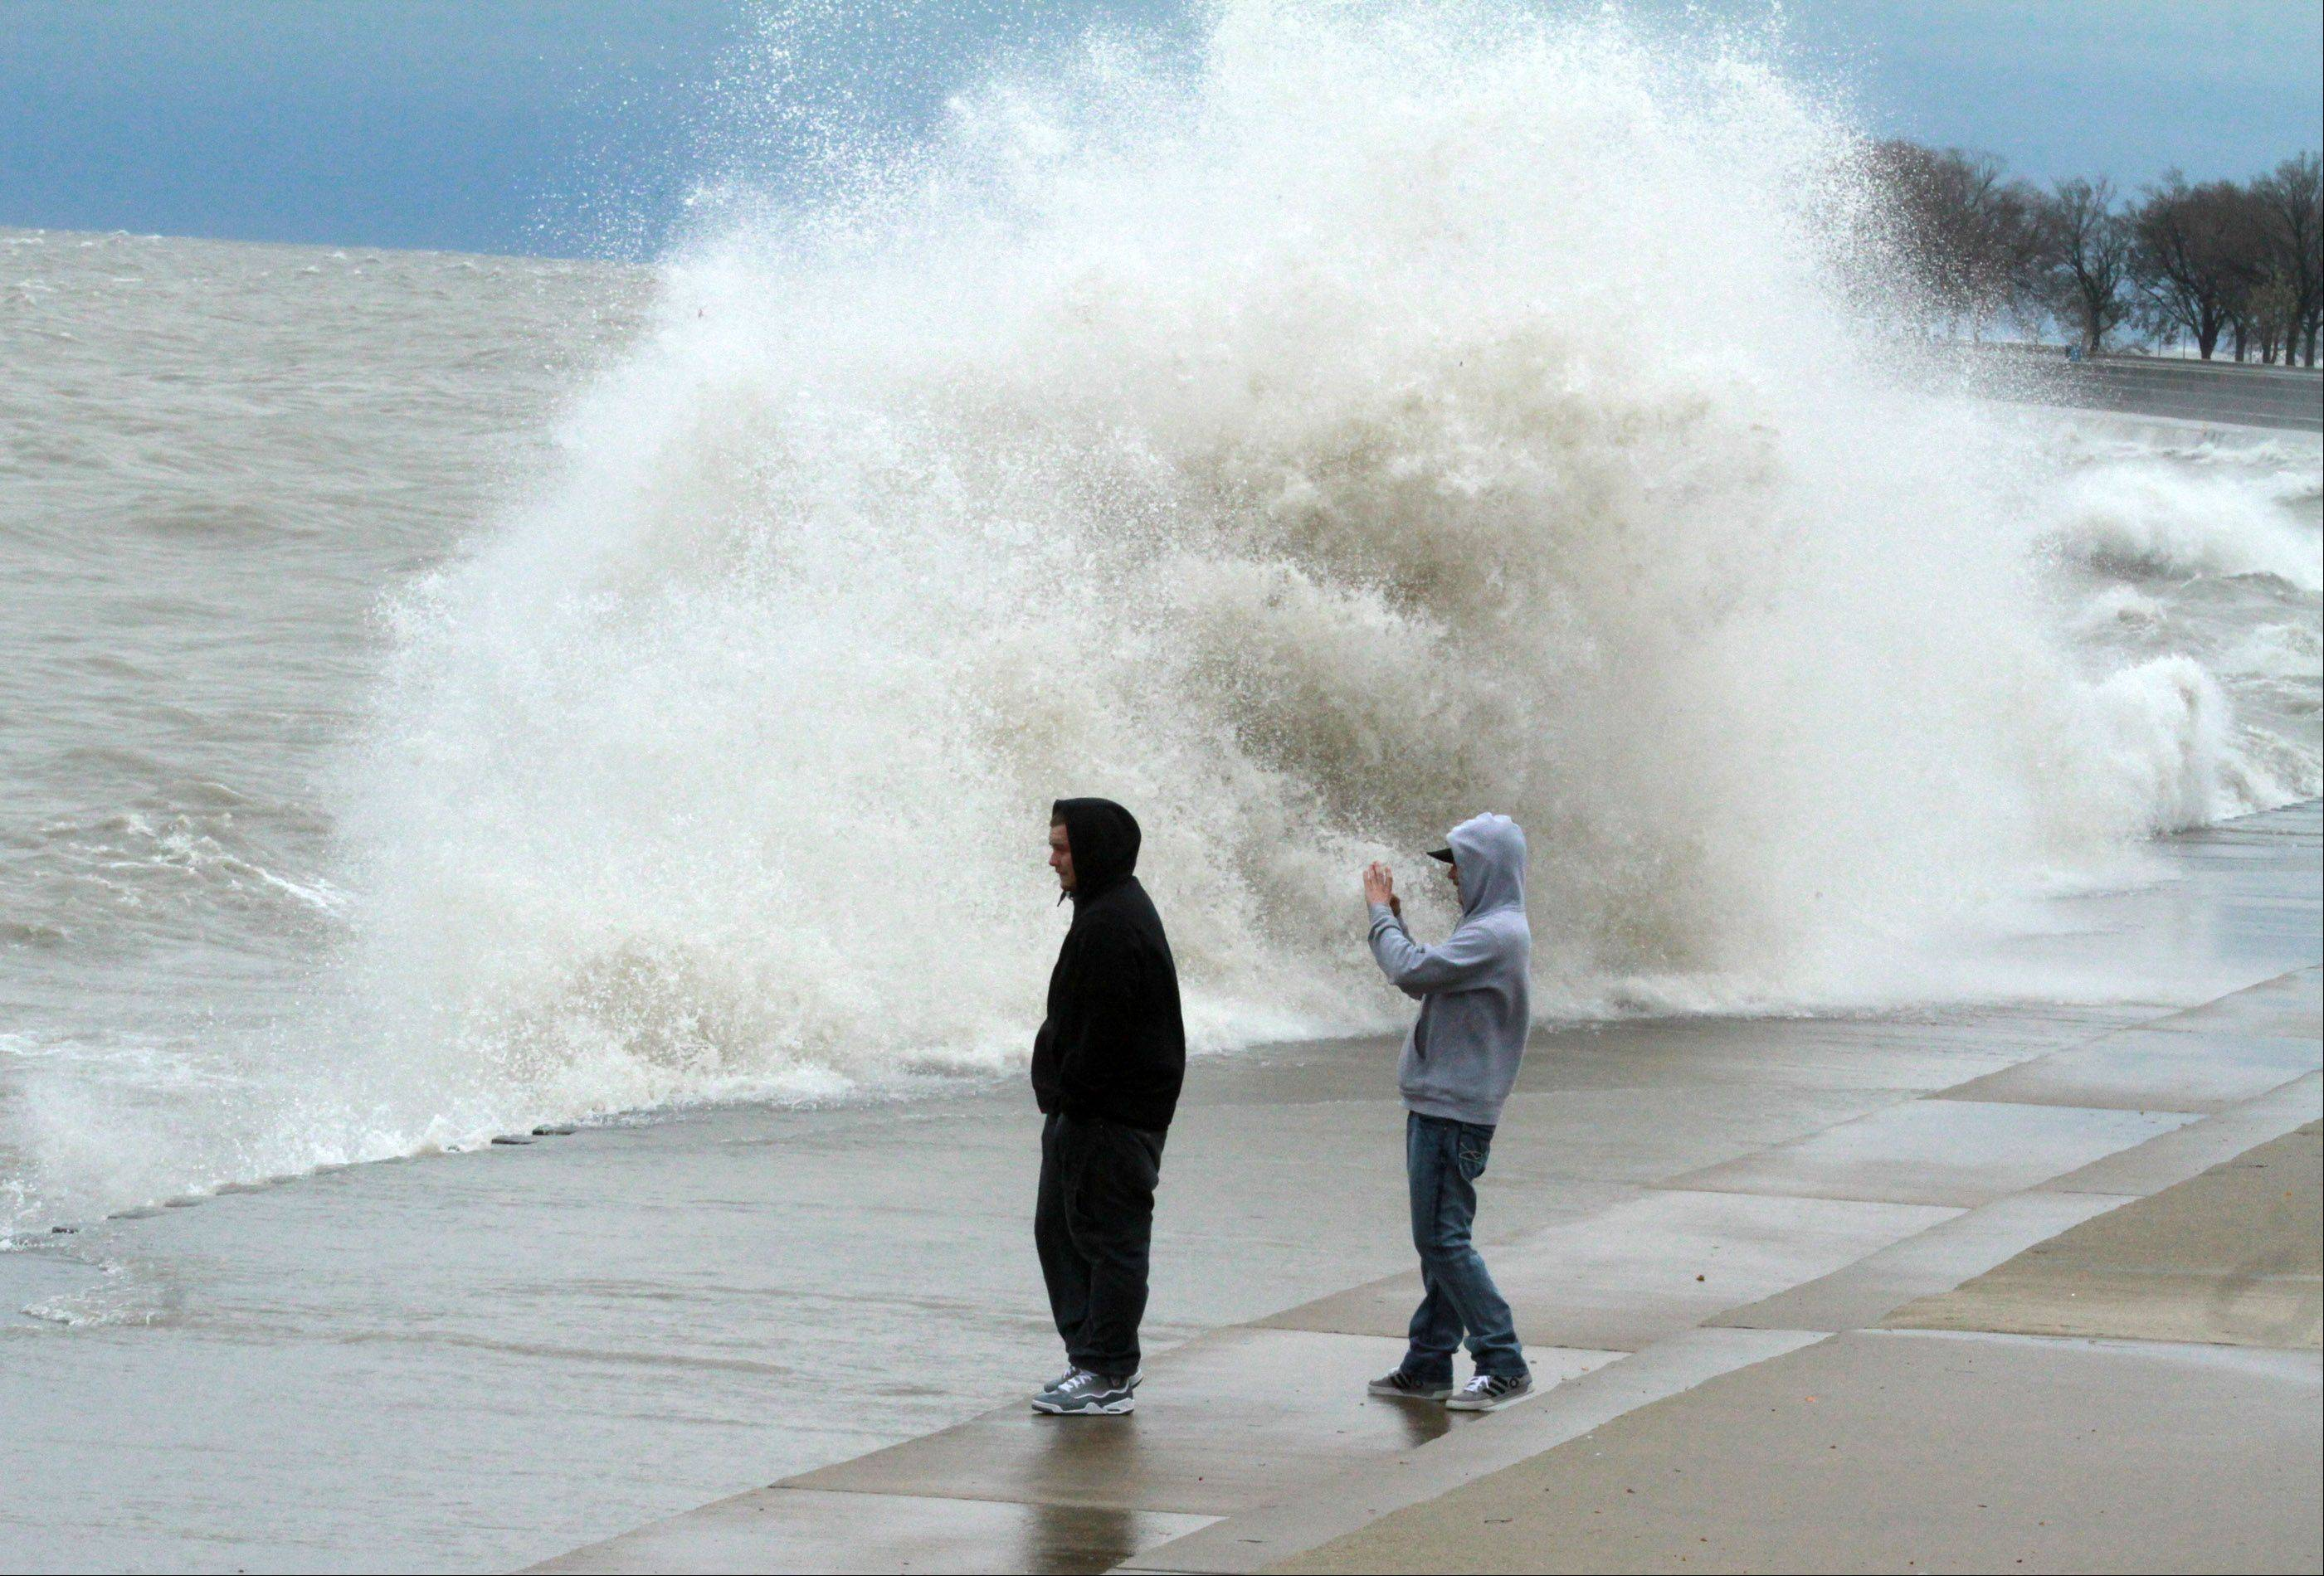 Mitch Mayle of North Riverside and Joe Krejci of La Grange Park take pictures near Sydney R. Marovitz Golf Course as giant waves batter Lake Michigan shoreline in Chicago on Tuesday, October 30.